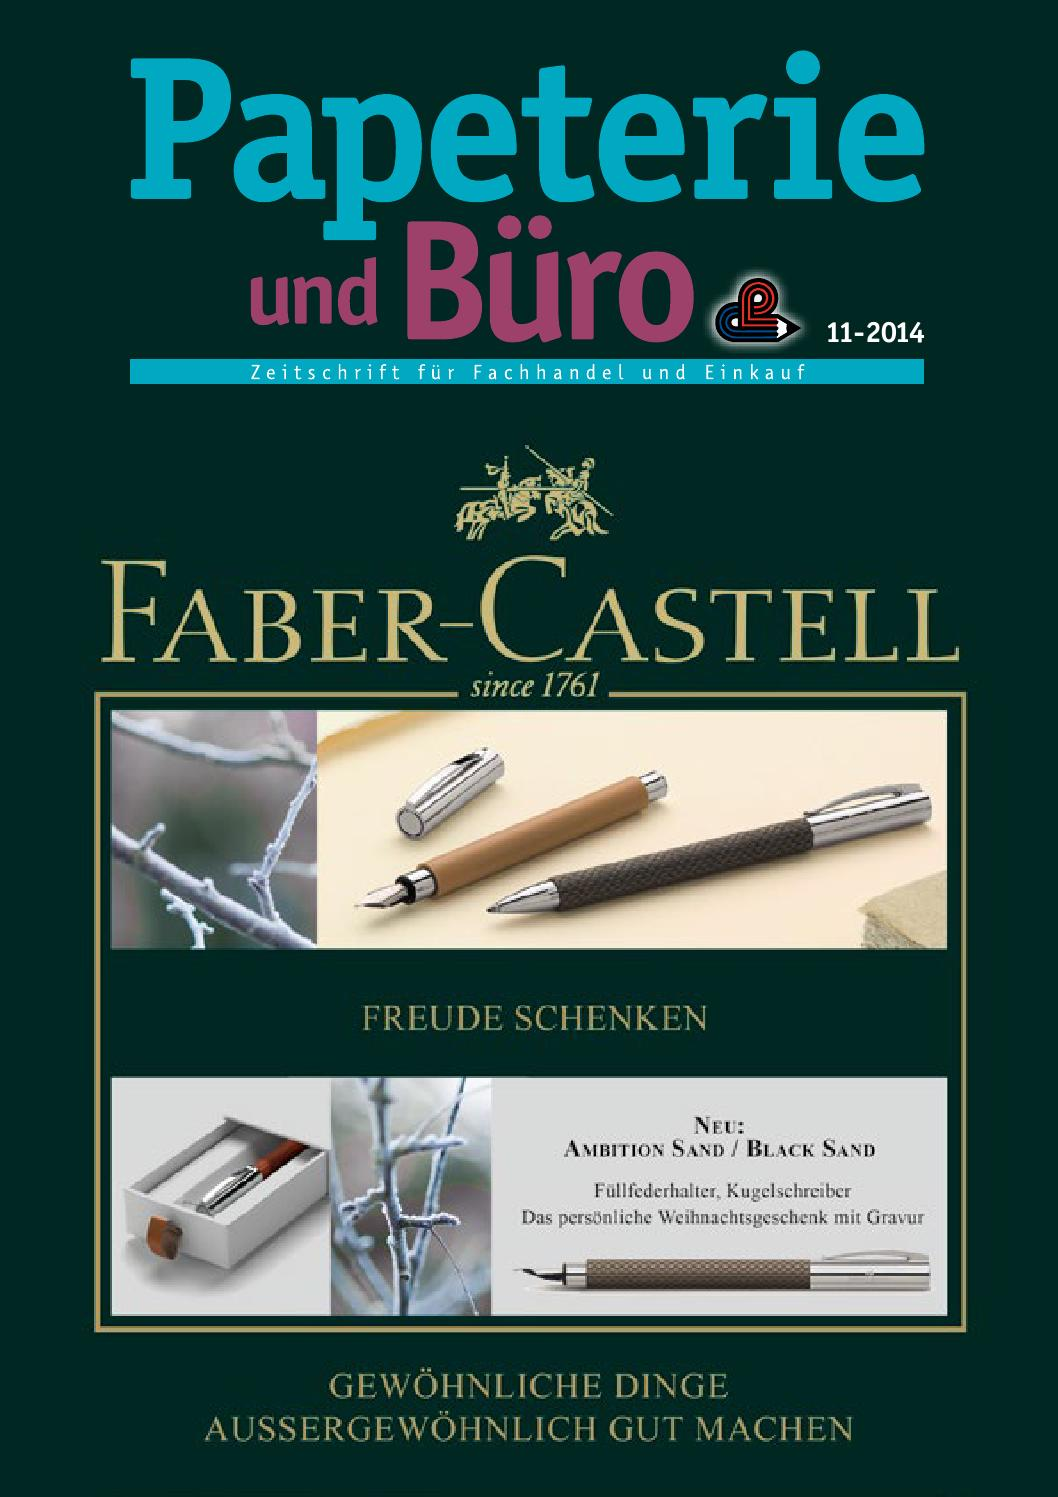 Papeterie & Büro November 2014 by Papeterie & Büro - issuu